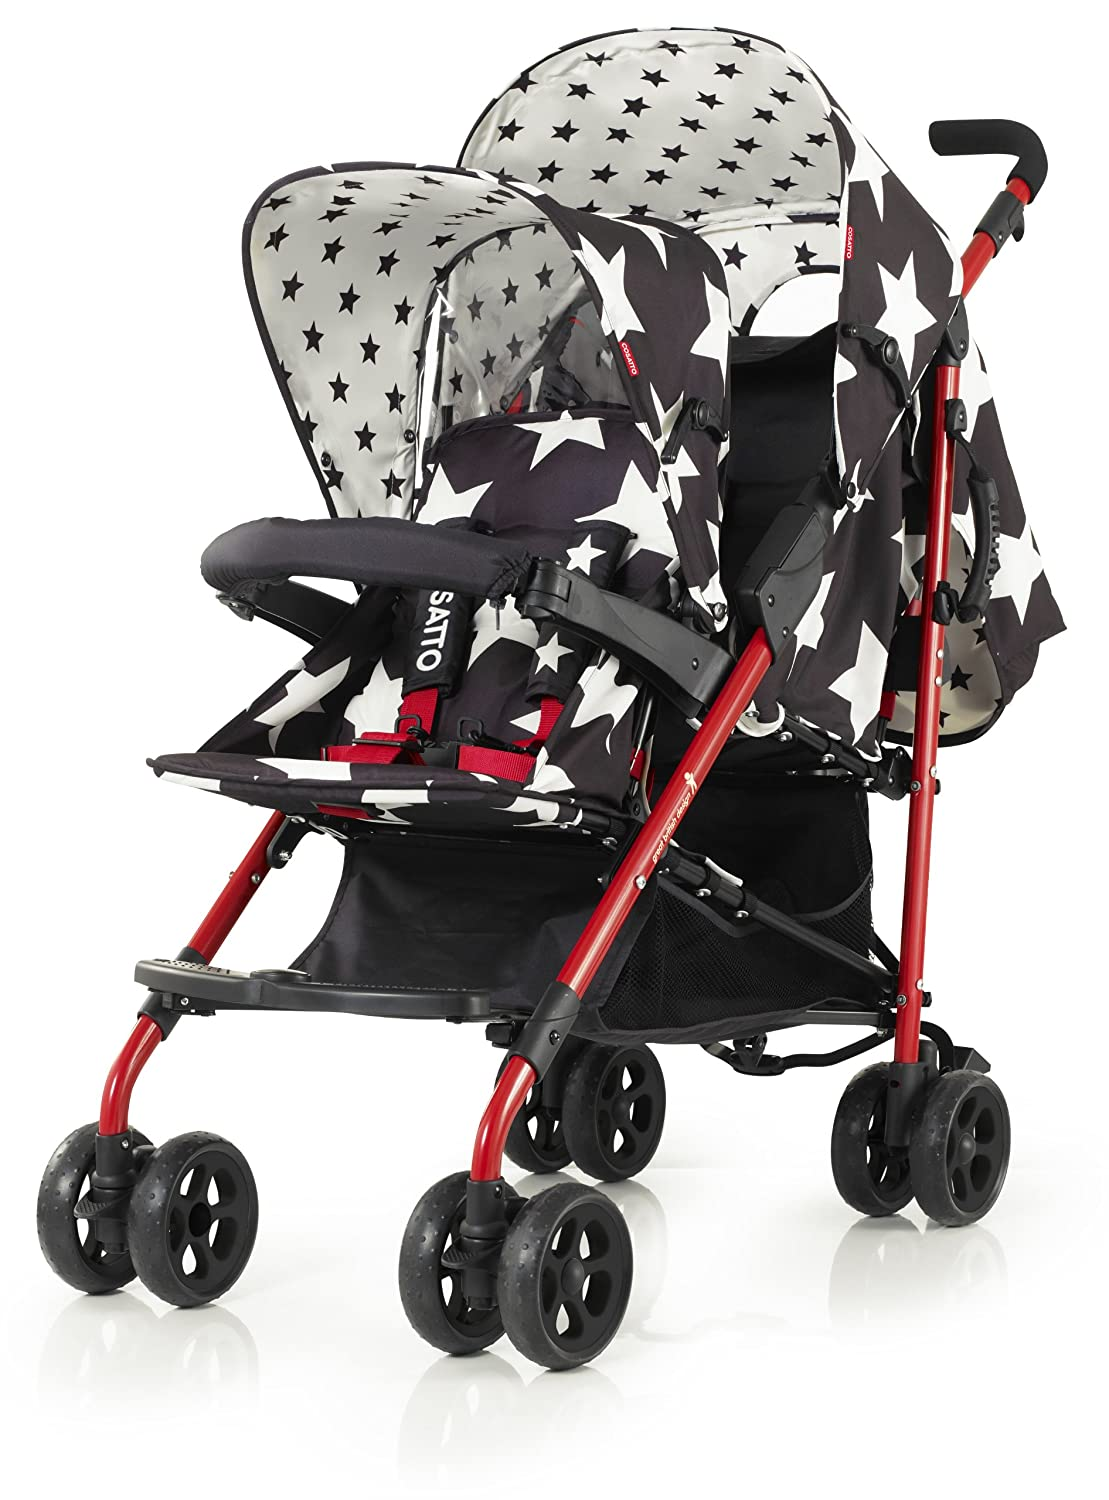 Amazon.com : Cosatto Shuffle Tandem Pushchair (All Star) : Baby